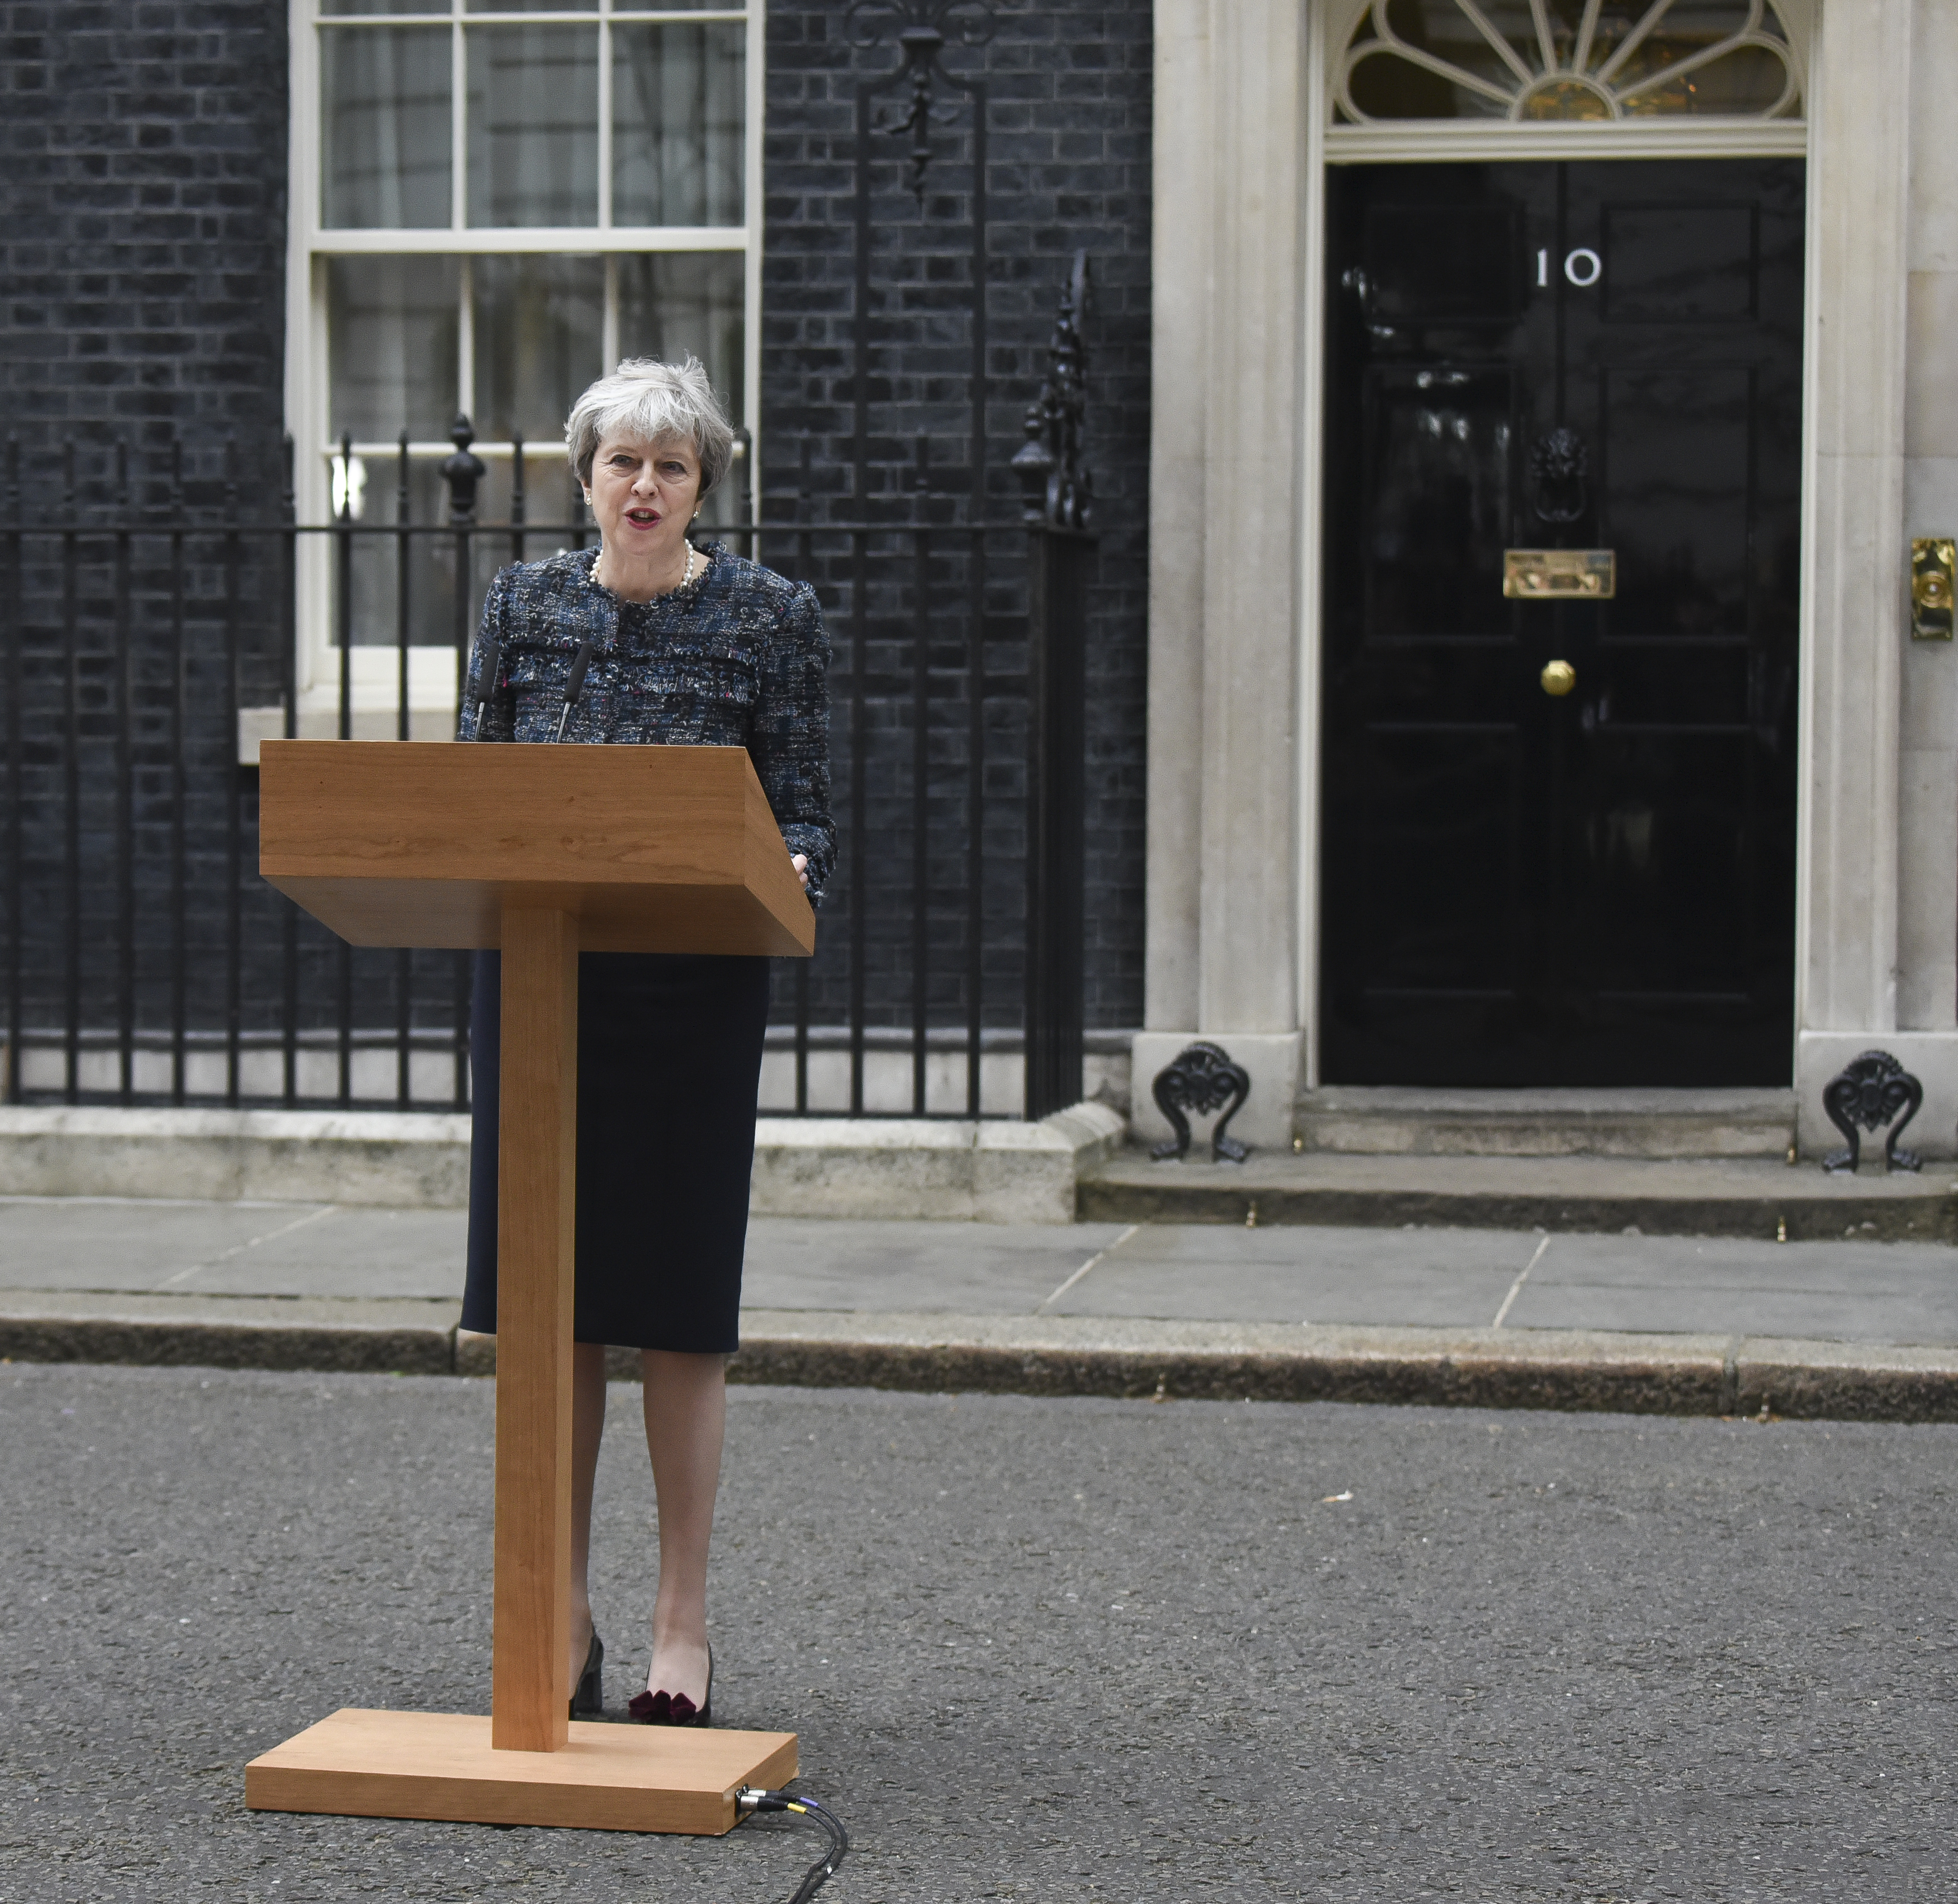 Prime Minister Theresa May seen at Downing Street after seeing the Queen and making a speech to the nation on May 03, 2017 in London.